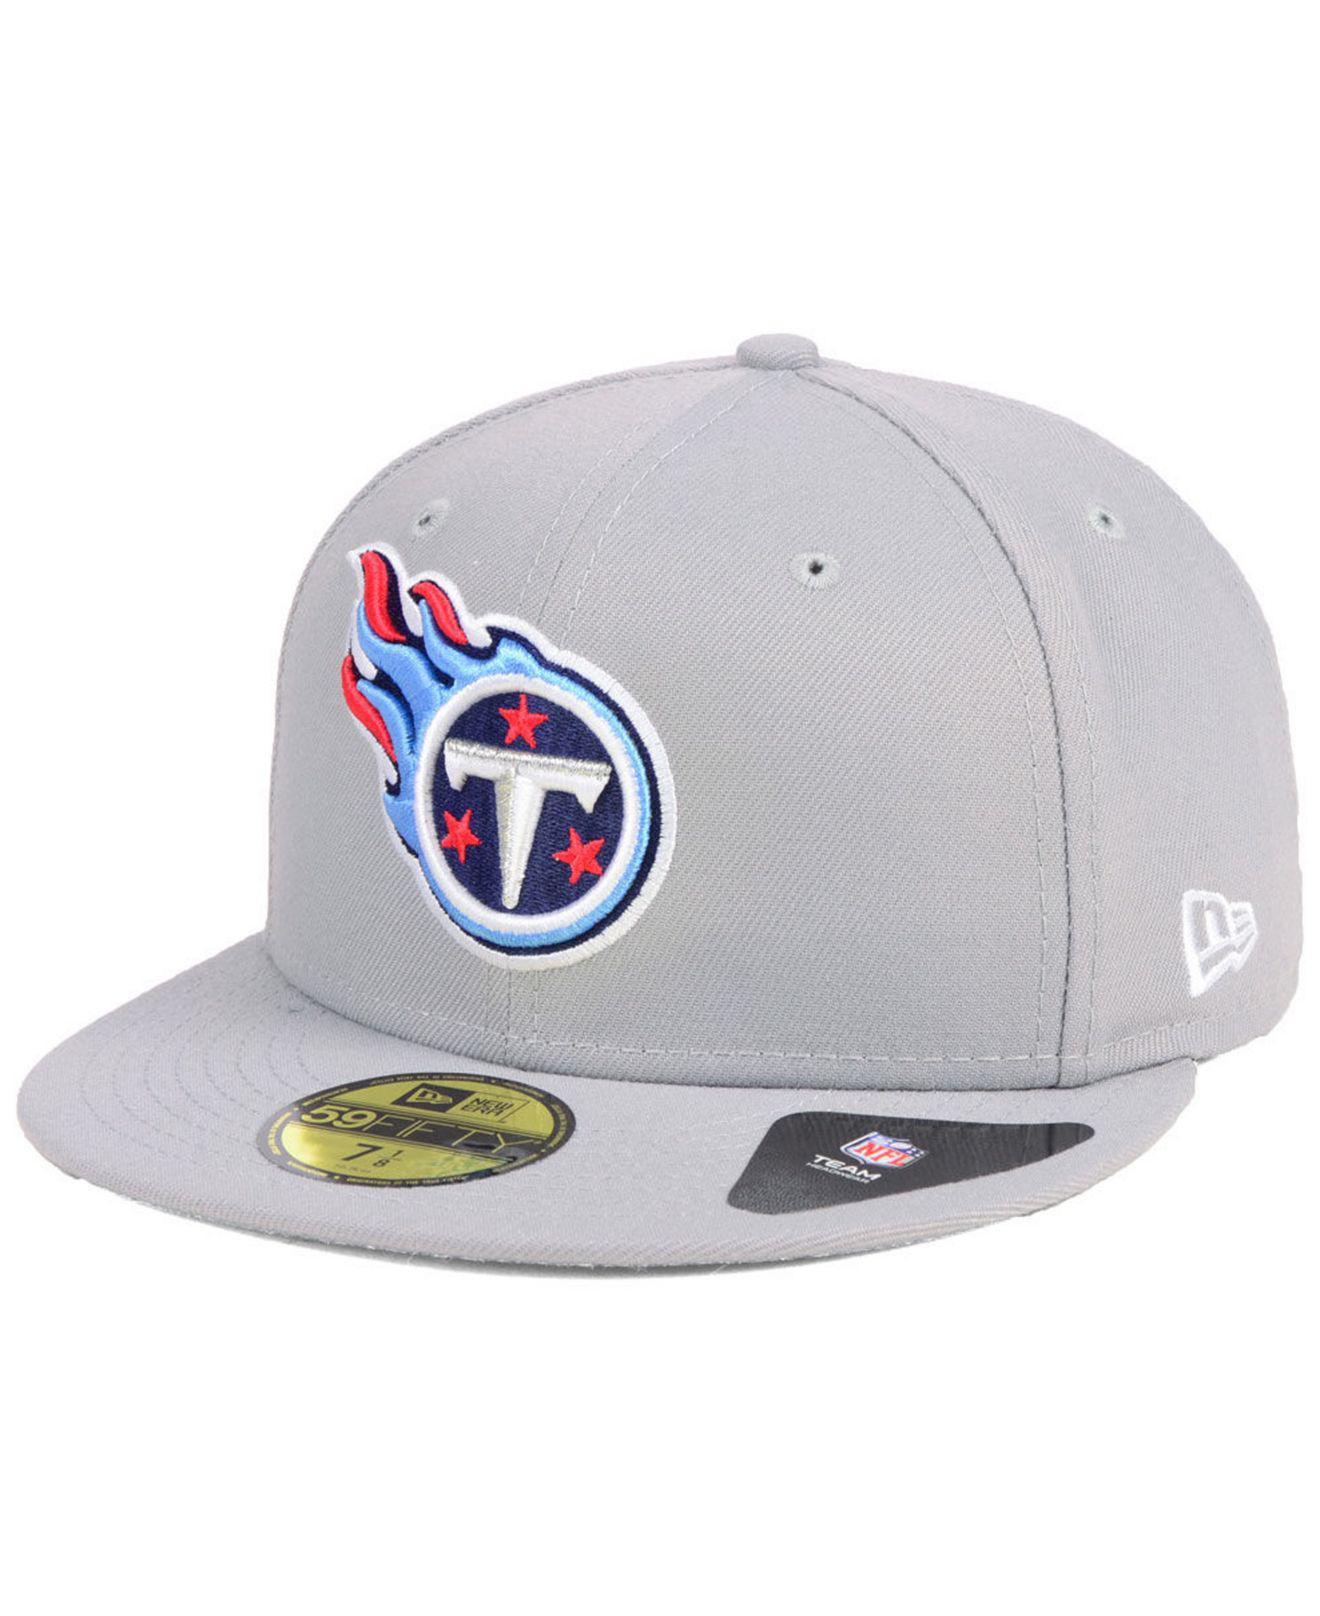 pretty nice 08f6d 244ca KTZ. Men s Gray Tennessee Titans Team Basic 59fifty Fitted Cap